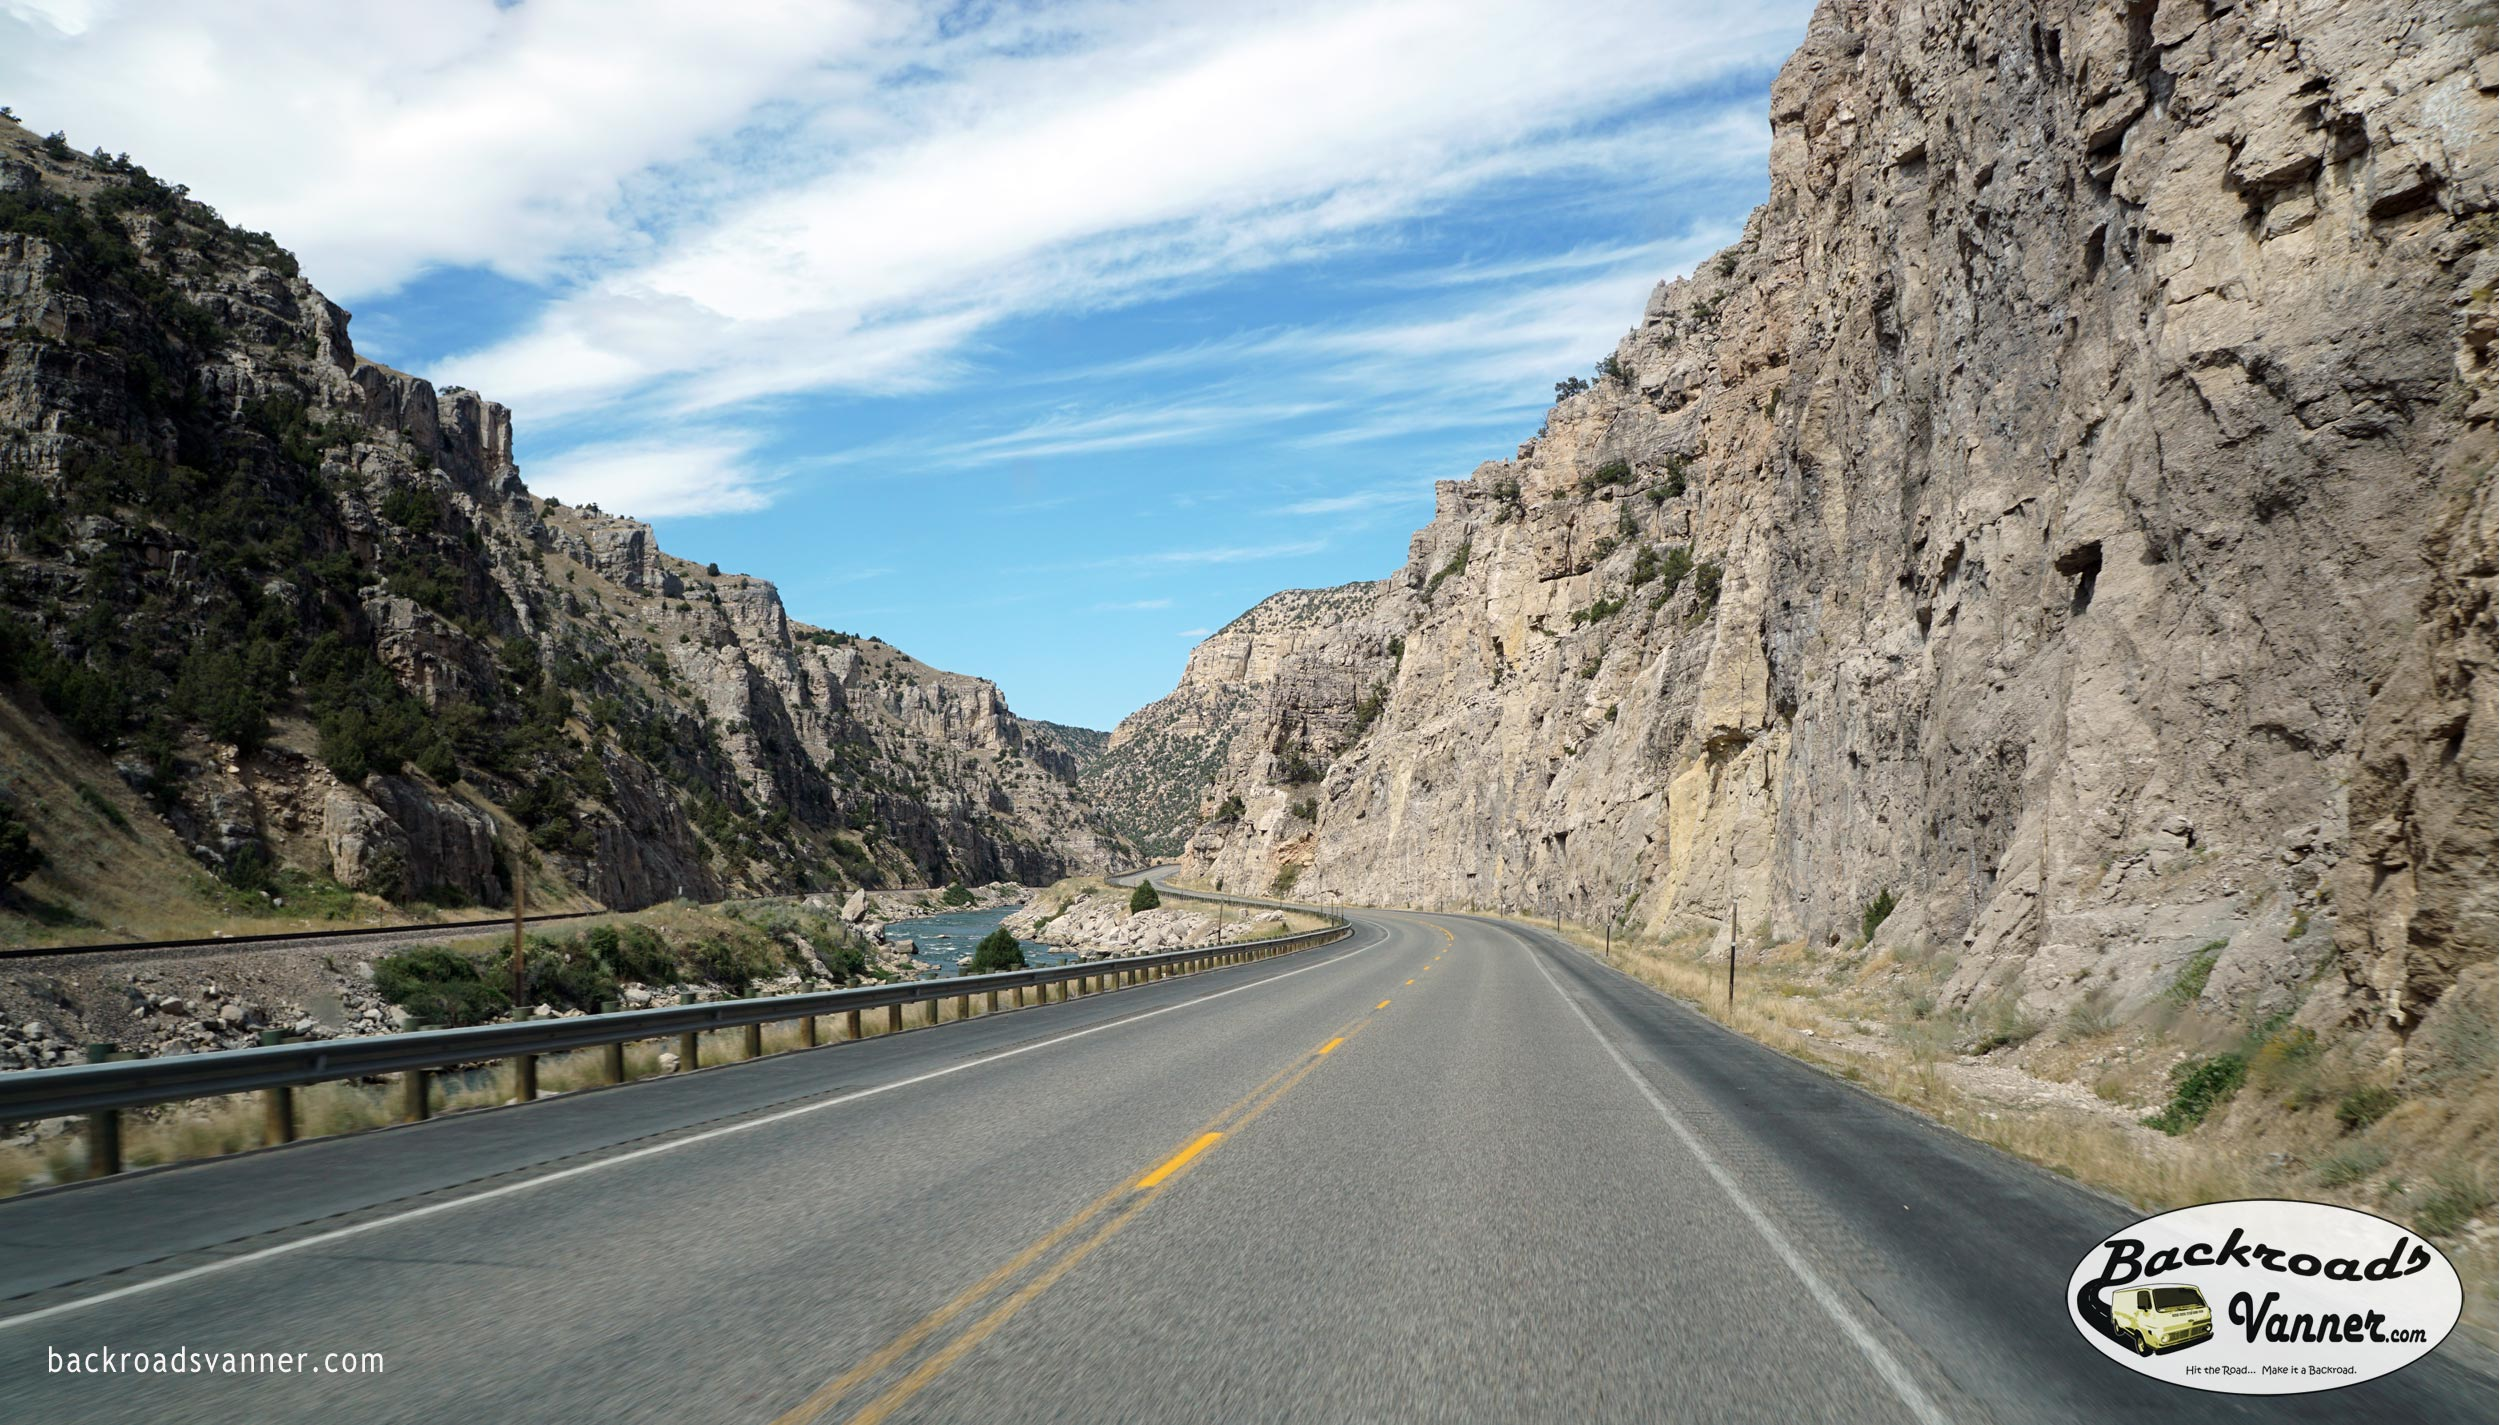 Wind River Canyon Scenic Drive (Wyoming) | BackroadsVanner.com